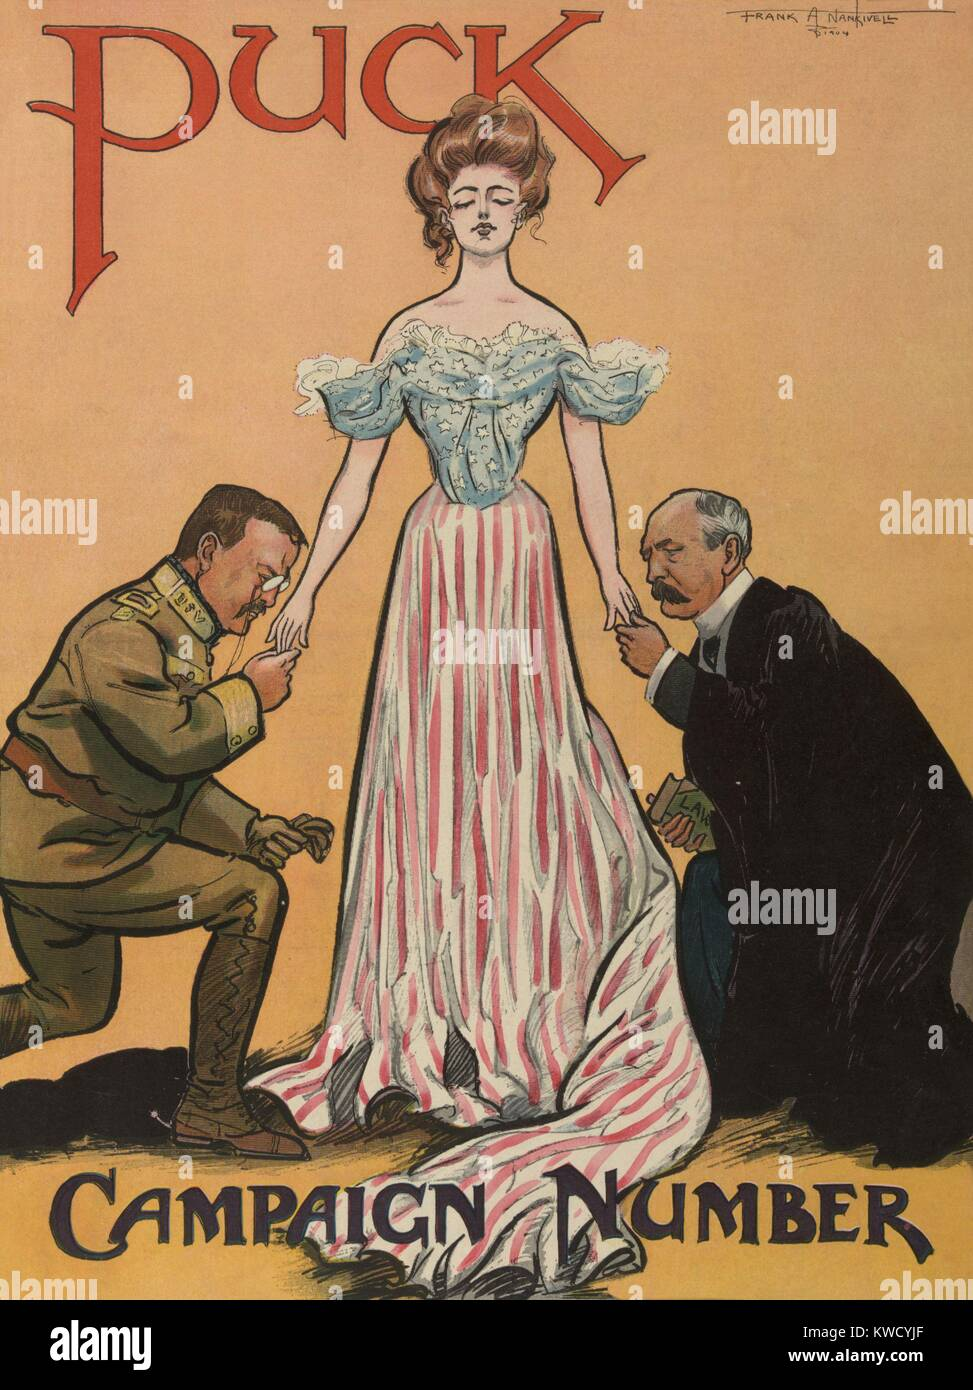 PUCK Magazine cover about the 1904 US Presidential election. It shows Columbia standing between kneeling President Stock Photo